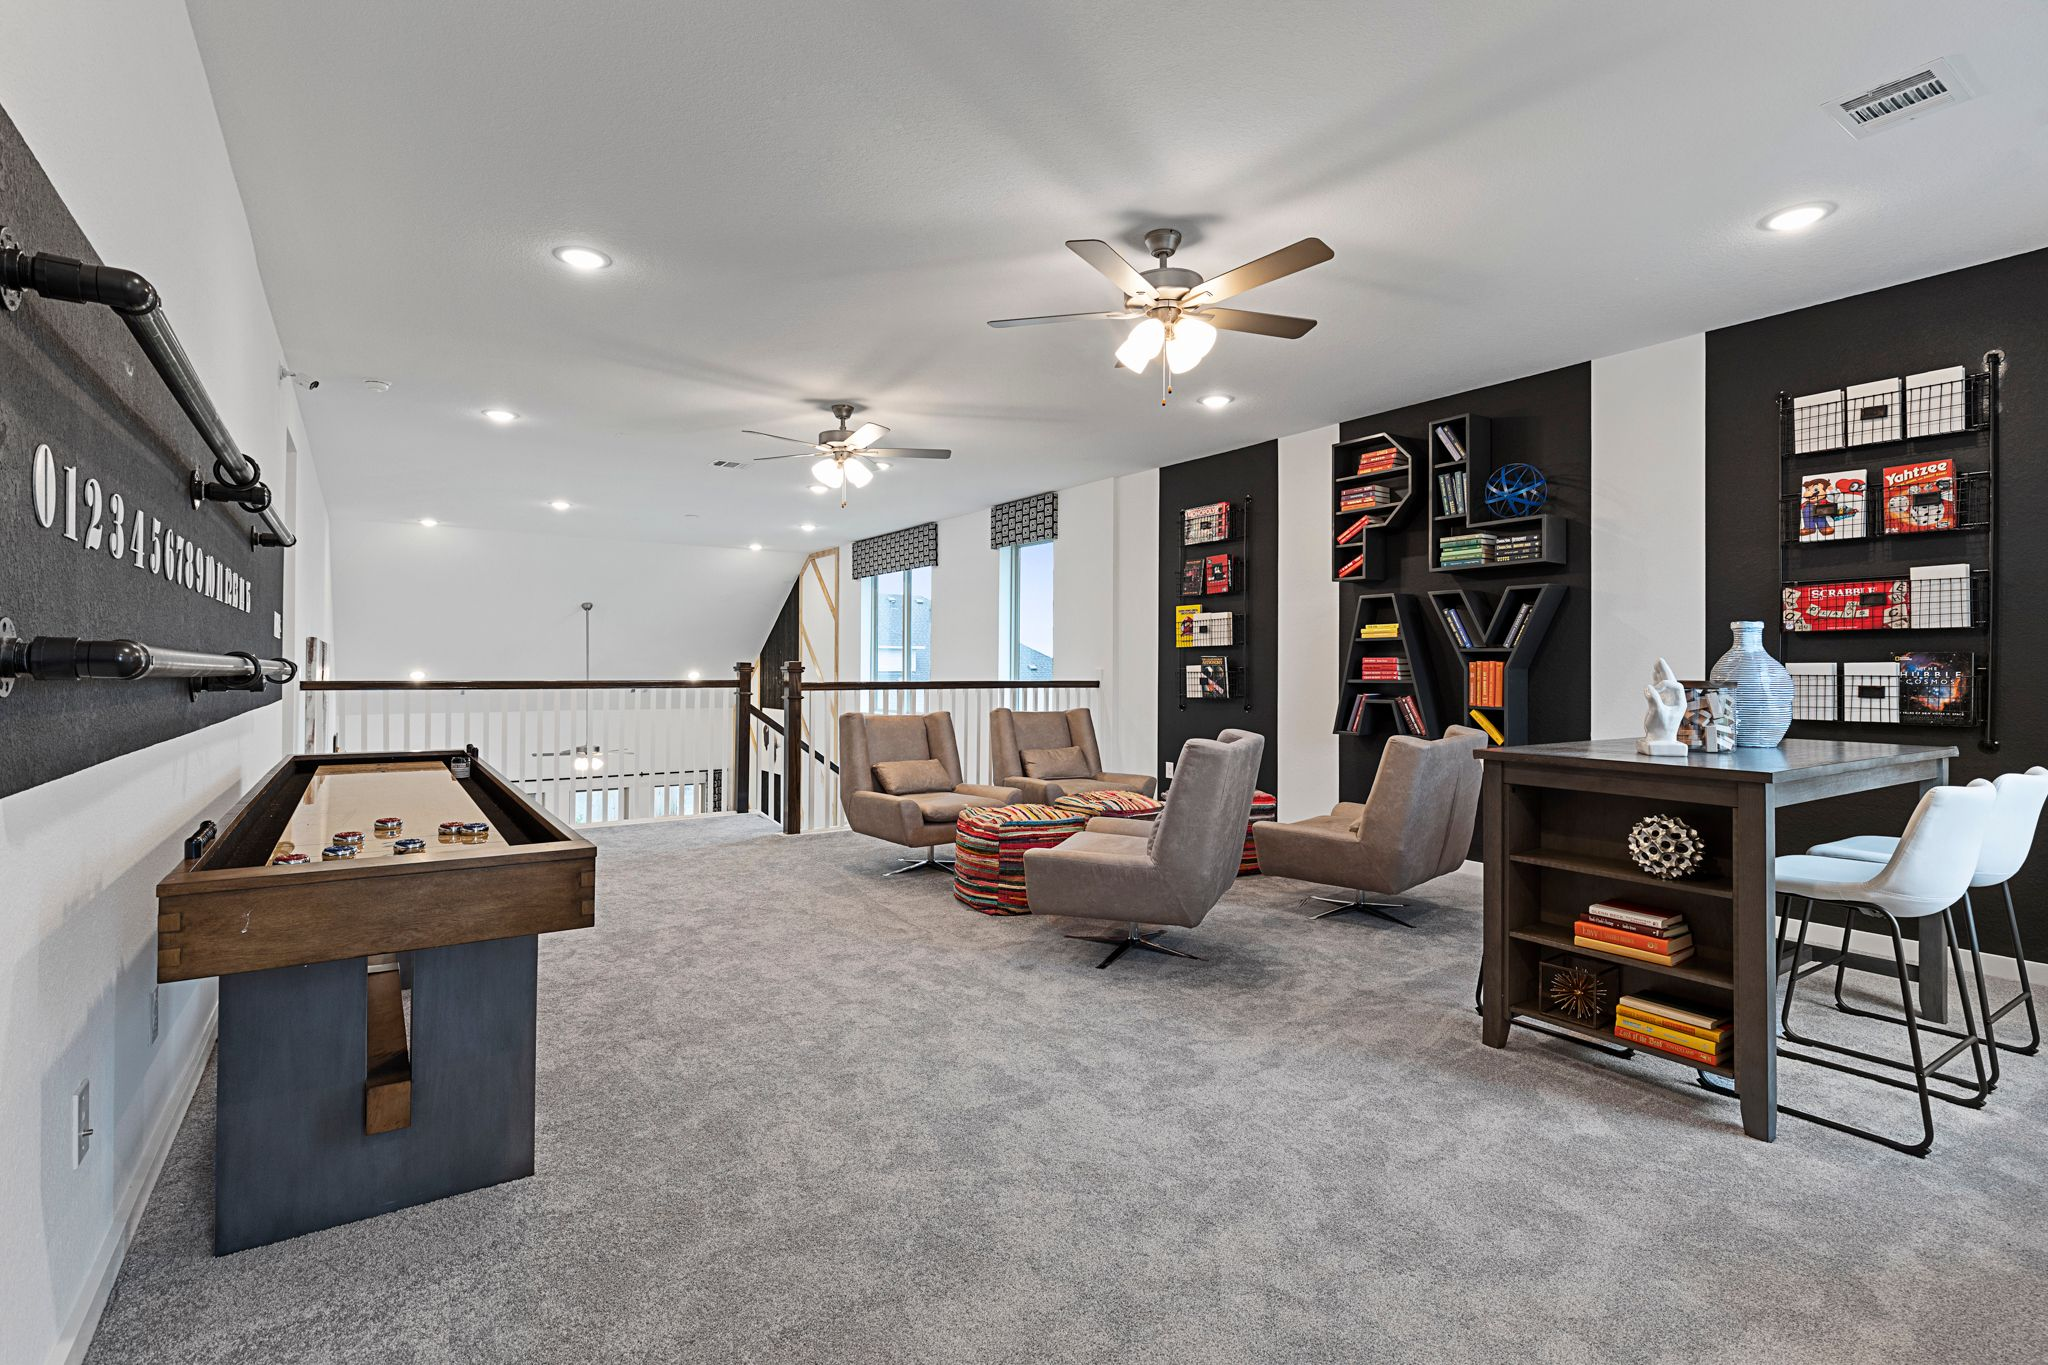 'Katy Lakes 60s' by HistoryMaker Homes in Houston